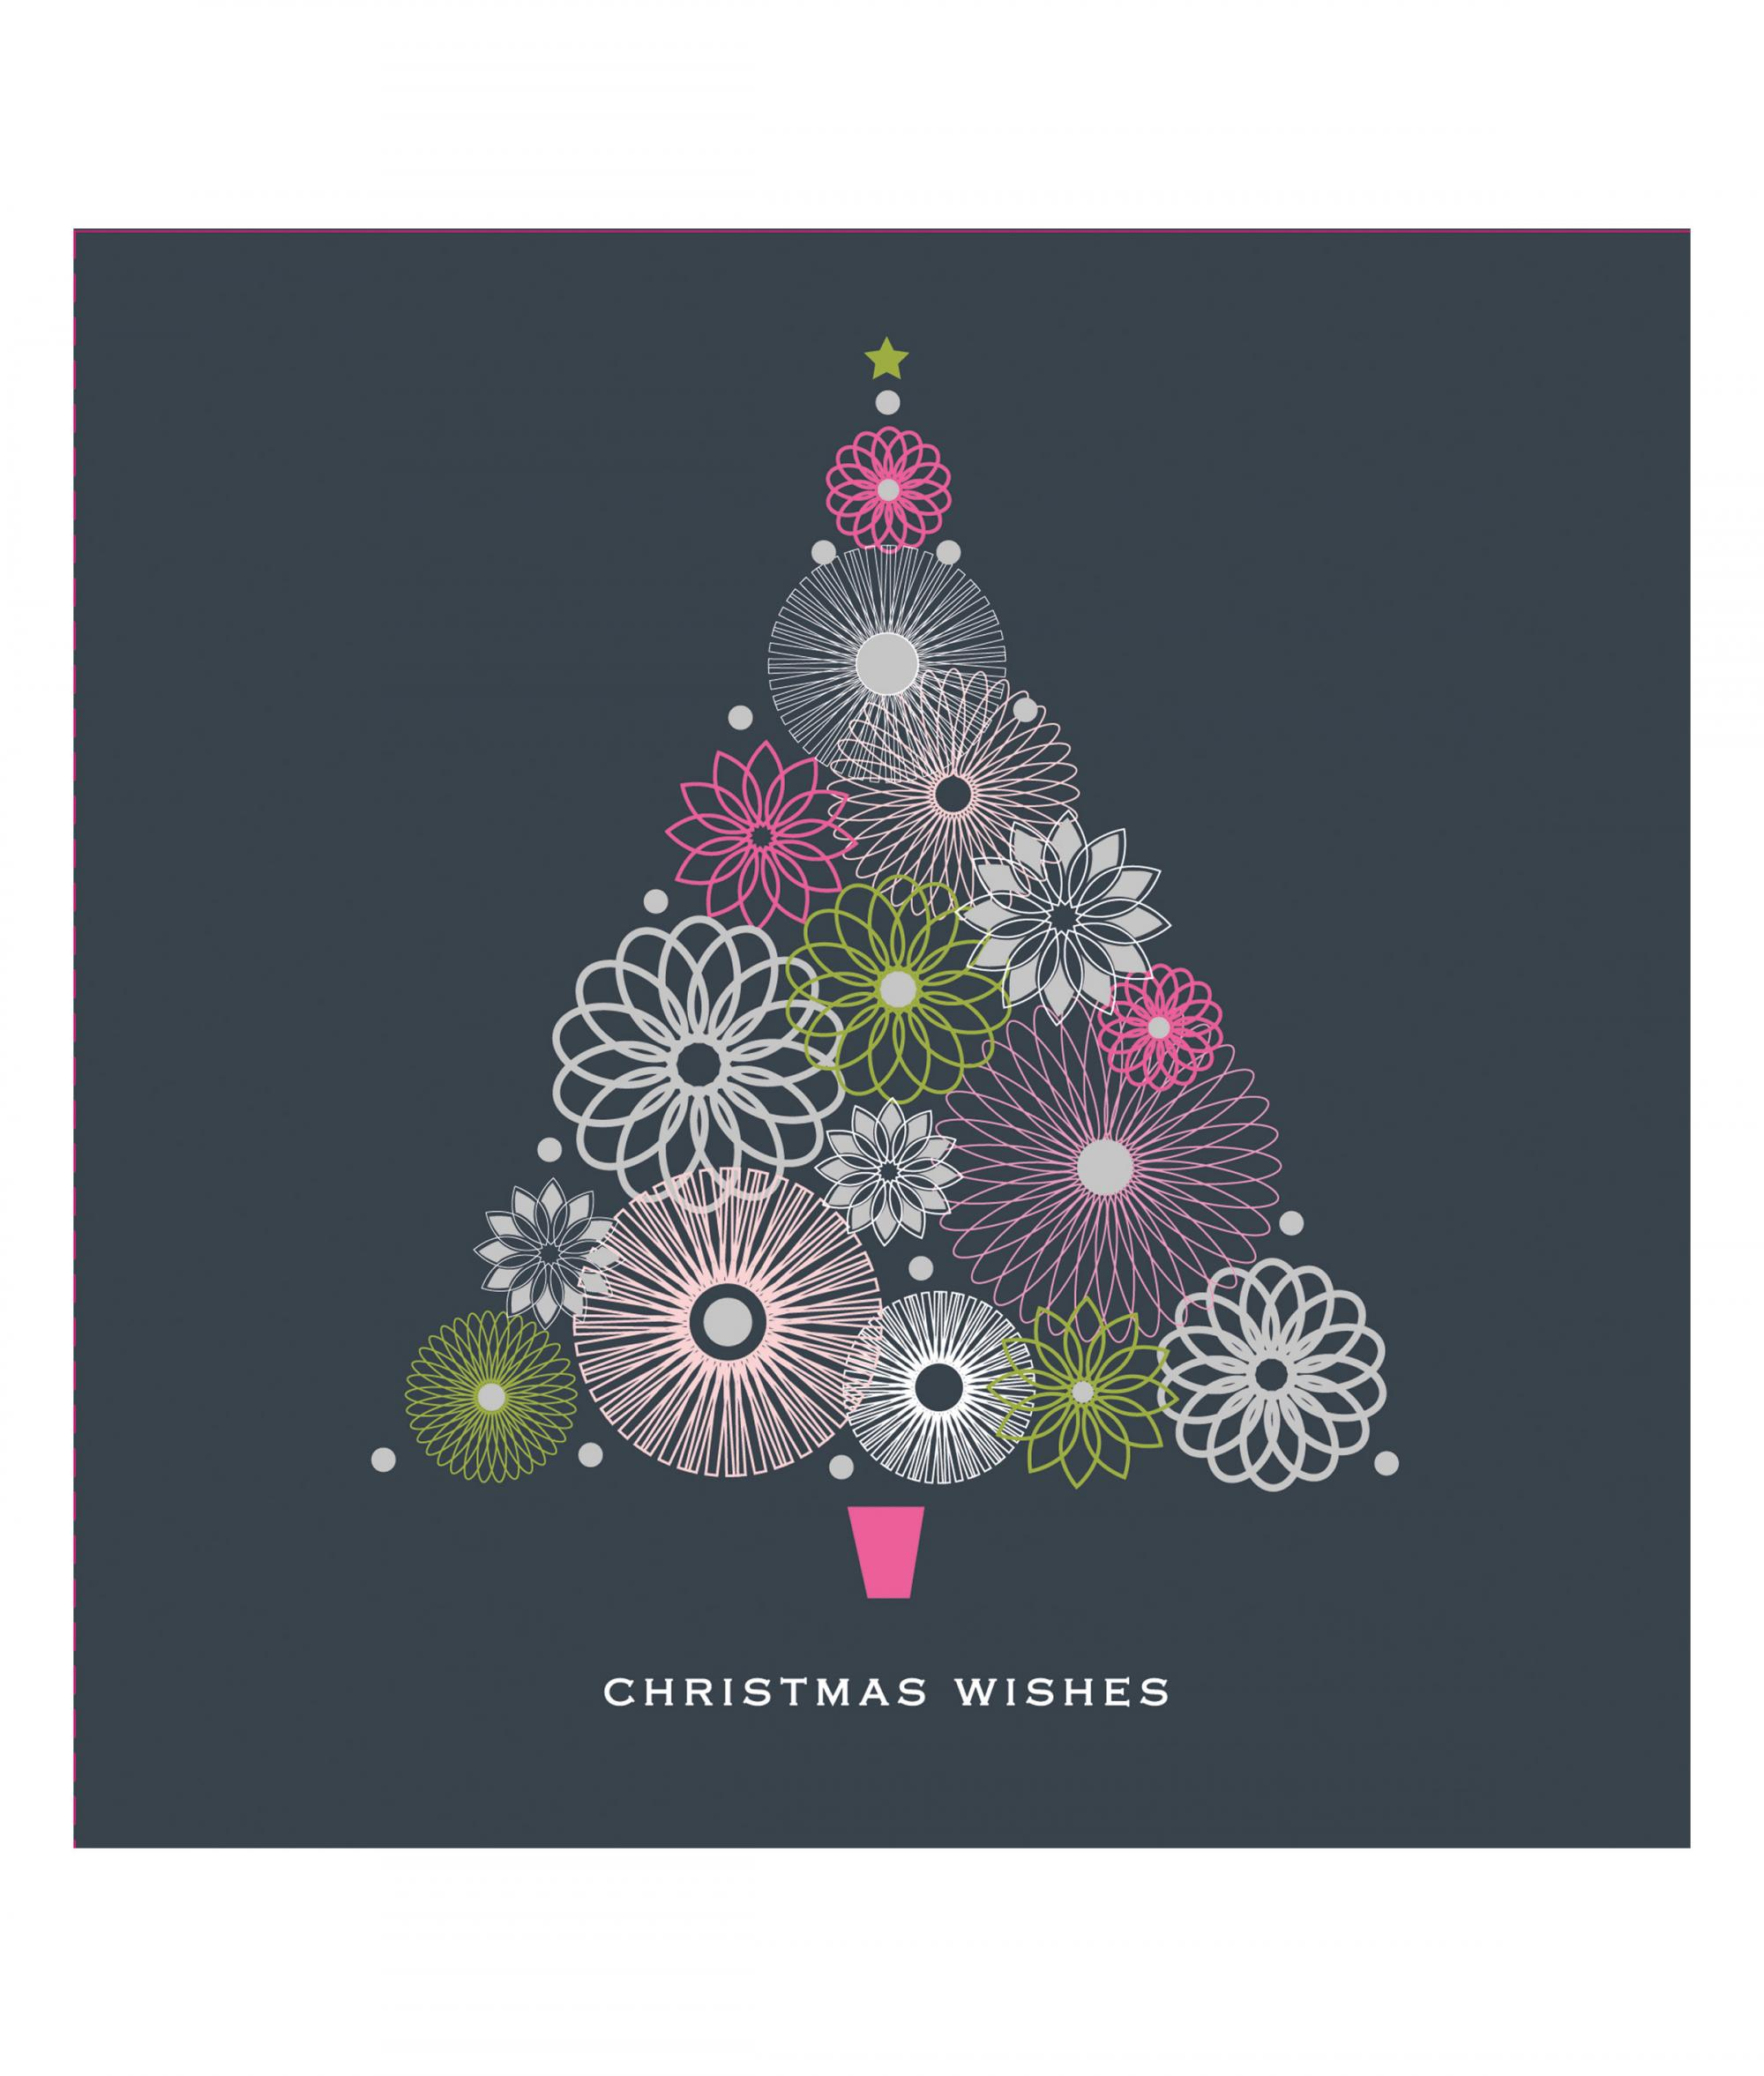 Nordic Christmas Card - Pack of 10 | Cancer Research UK Online Shop